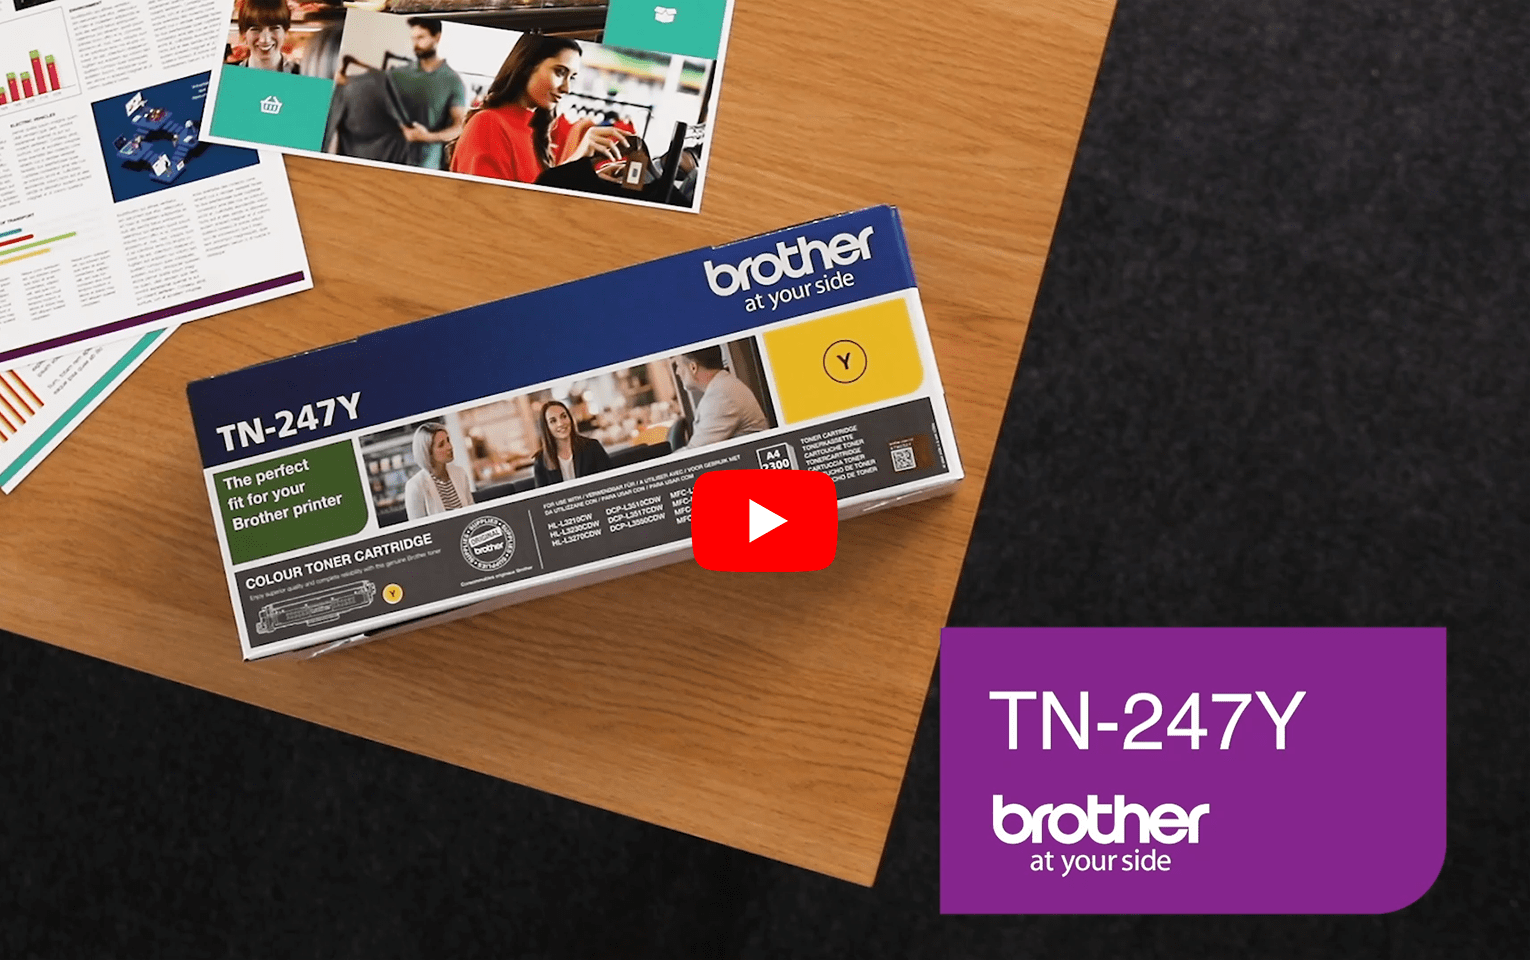 Brother TN-247Y Tonerkartusche – Gelb 5